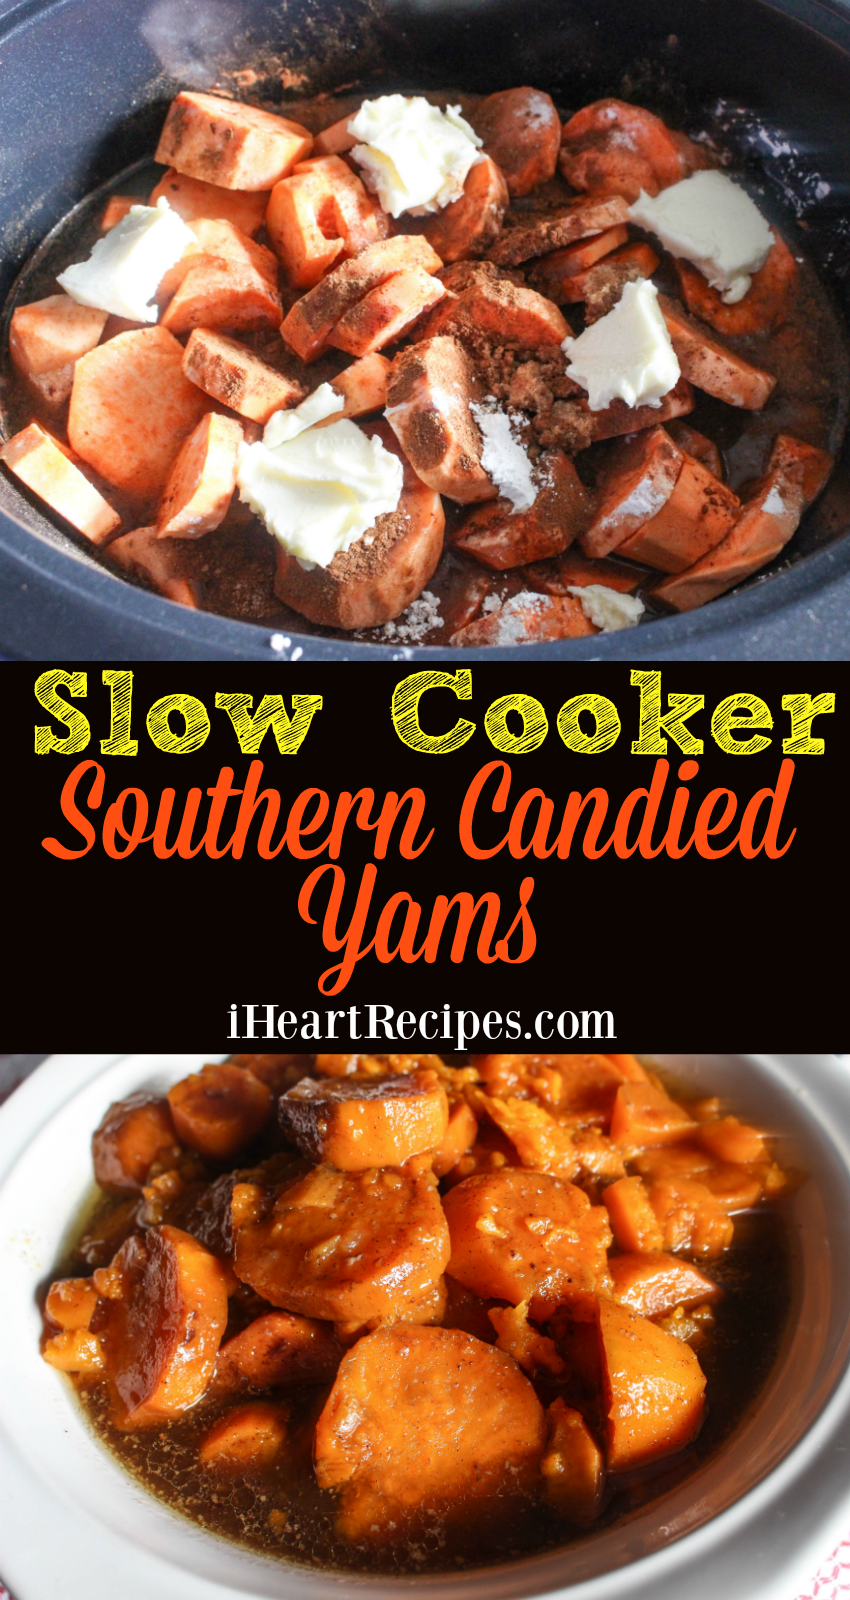 Learn how to make Slow Cooker Southern Candied Yams from I Heart Recipes